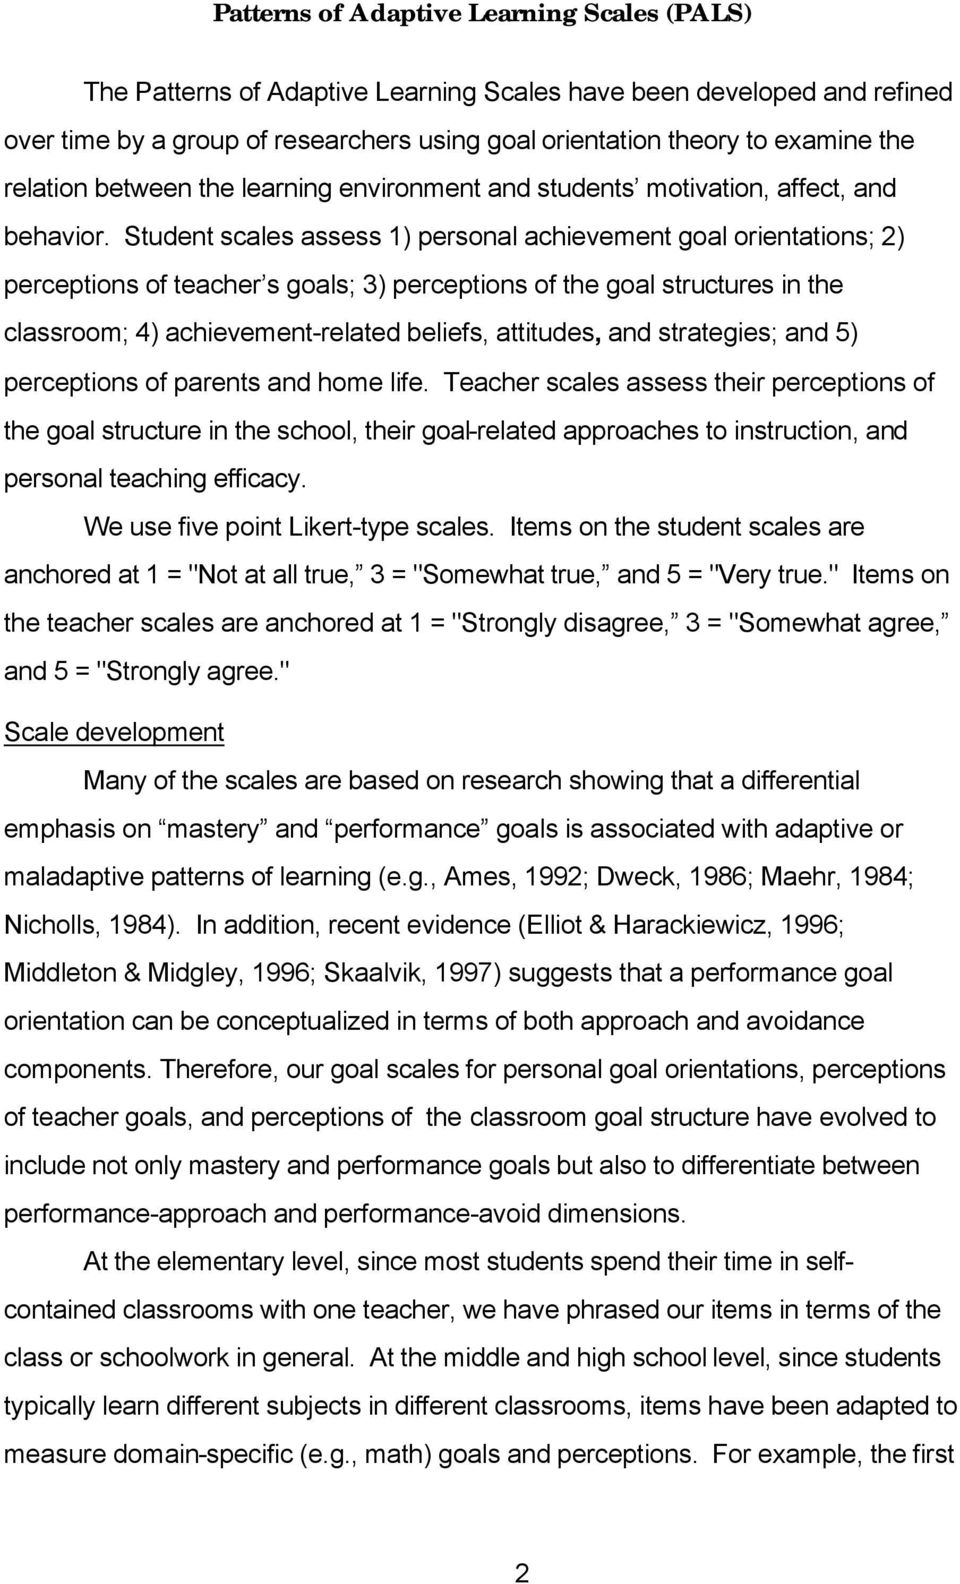 Student scales assess 1) personal achievement goal orientations; 2) perceptions of teacher s goals; 3) perceptions of the goal structures in the classroom; 4) achievement-related beliefs, attitudes,